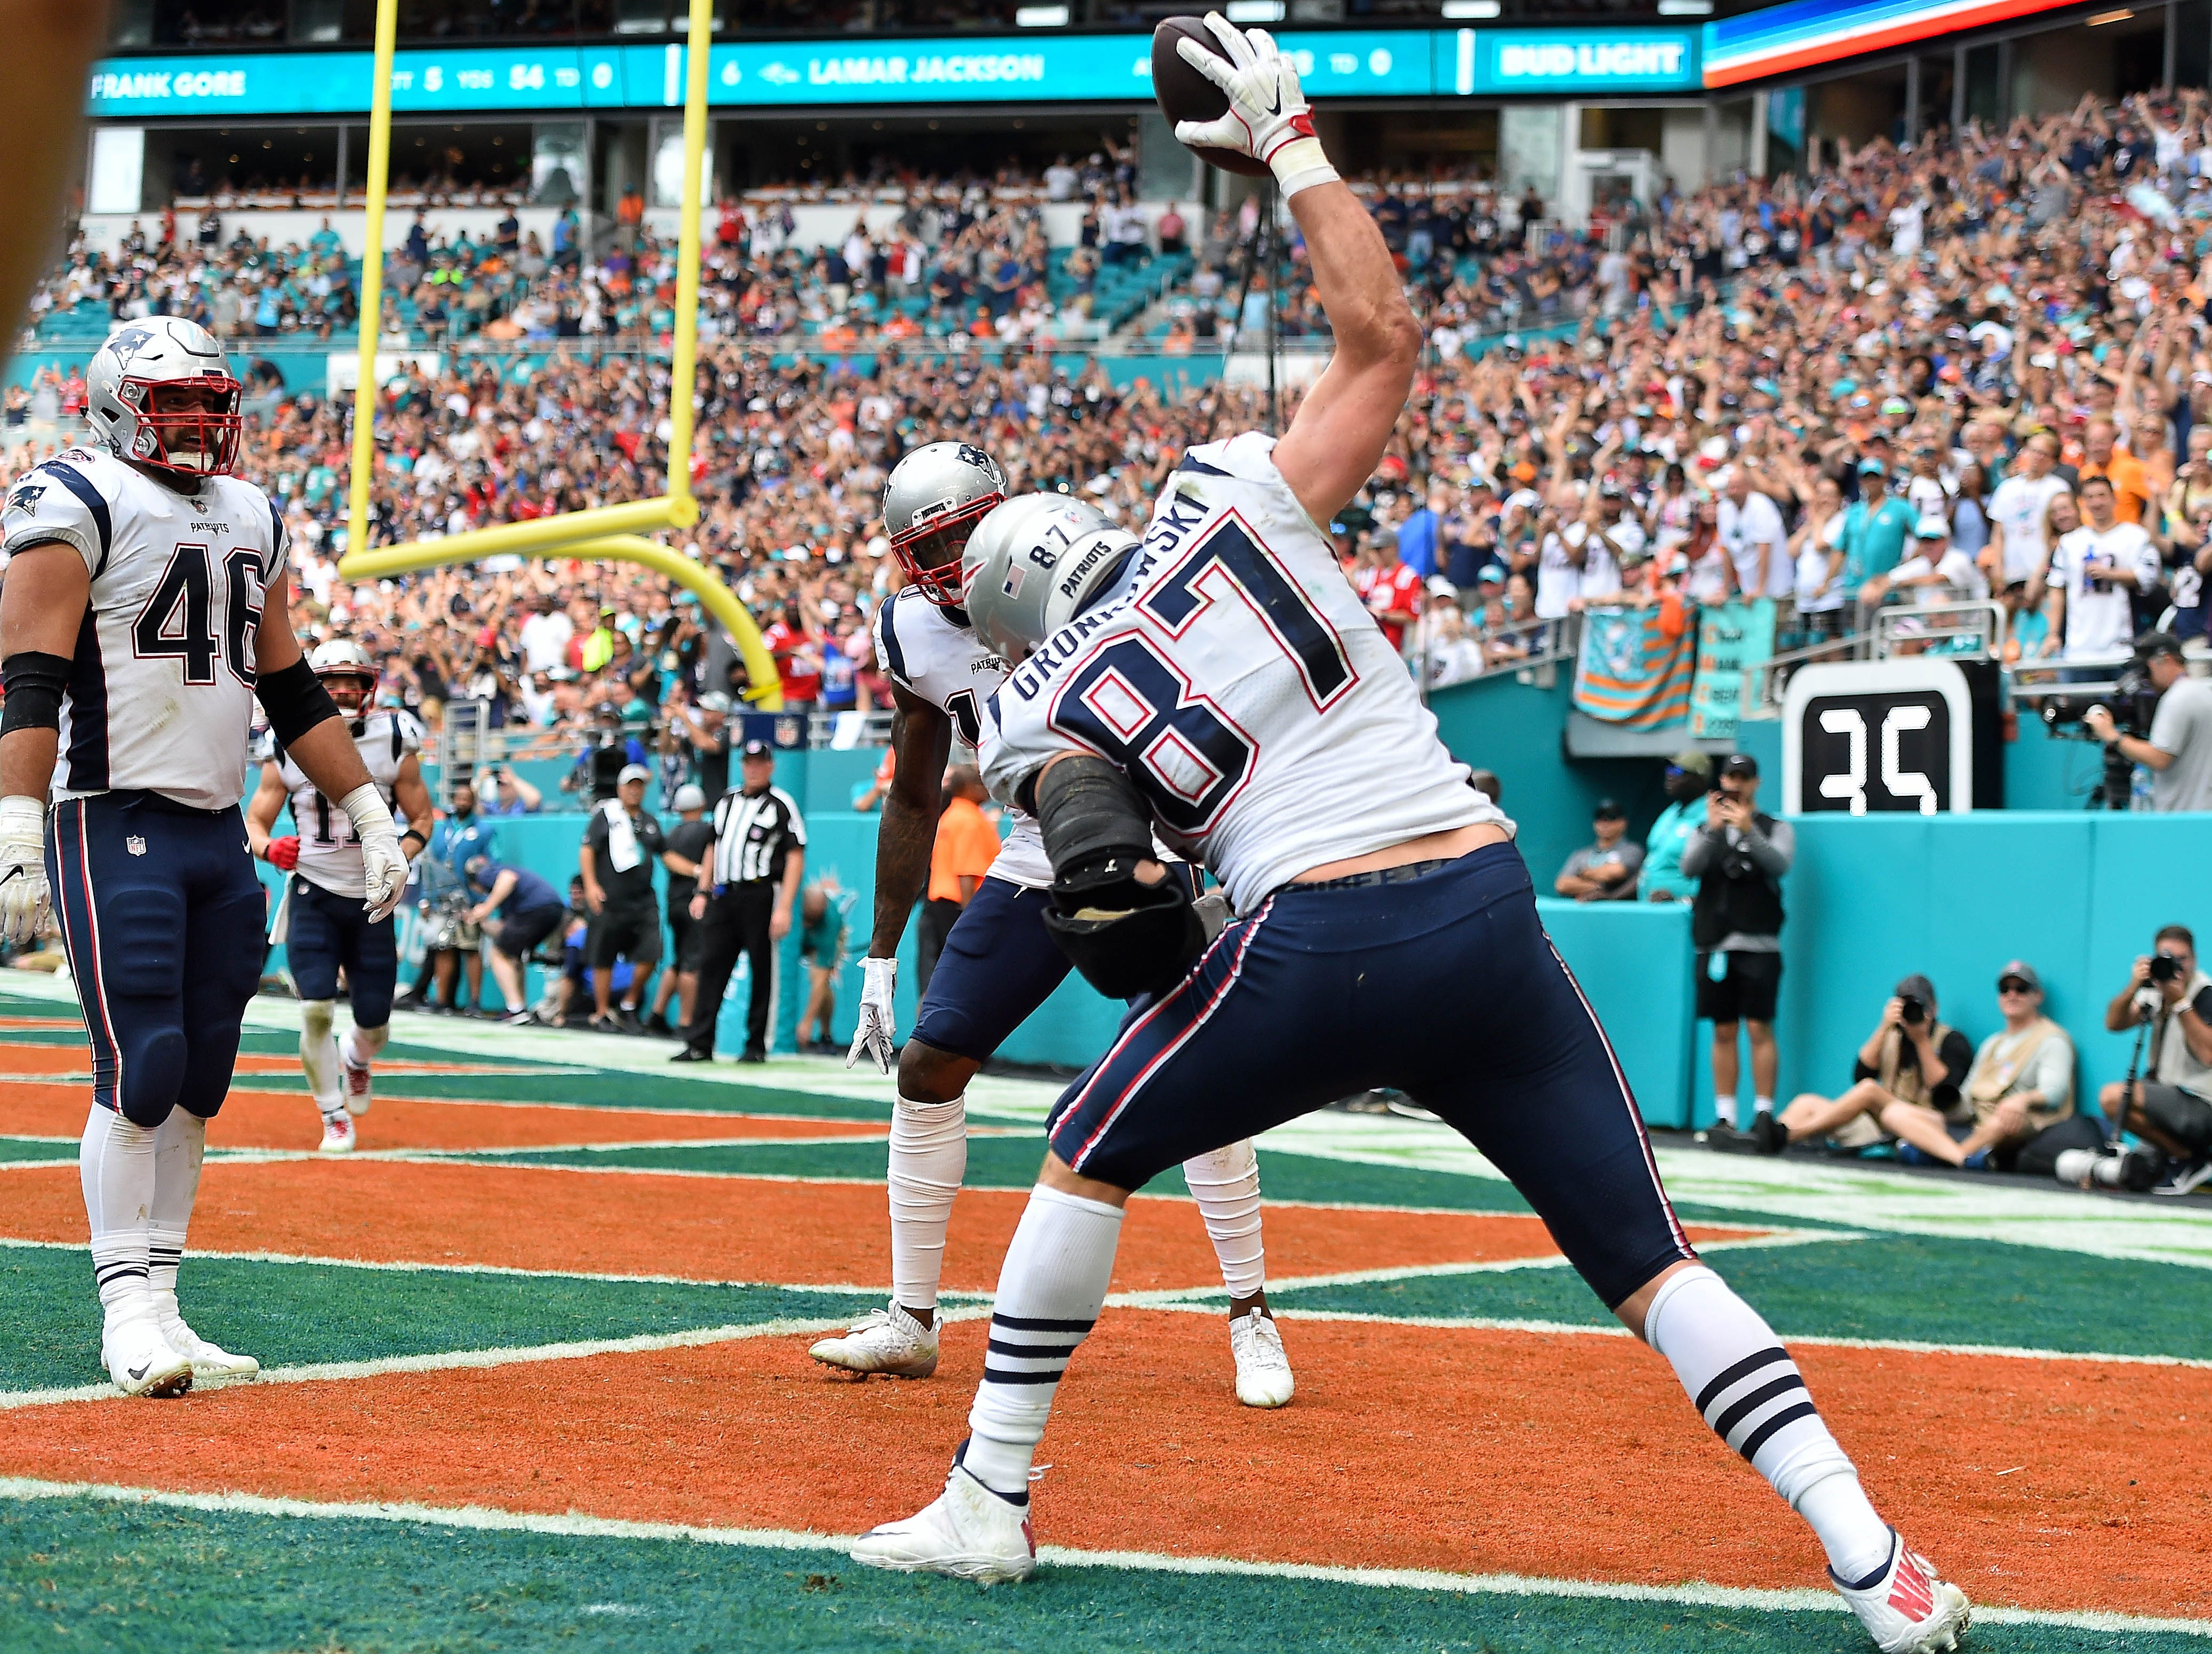 Patriots tight end Rob Gronkowski spikes the ball after a touchdown against the Dolphins.